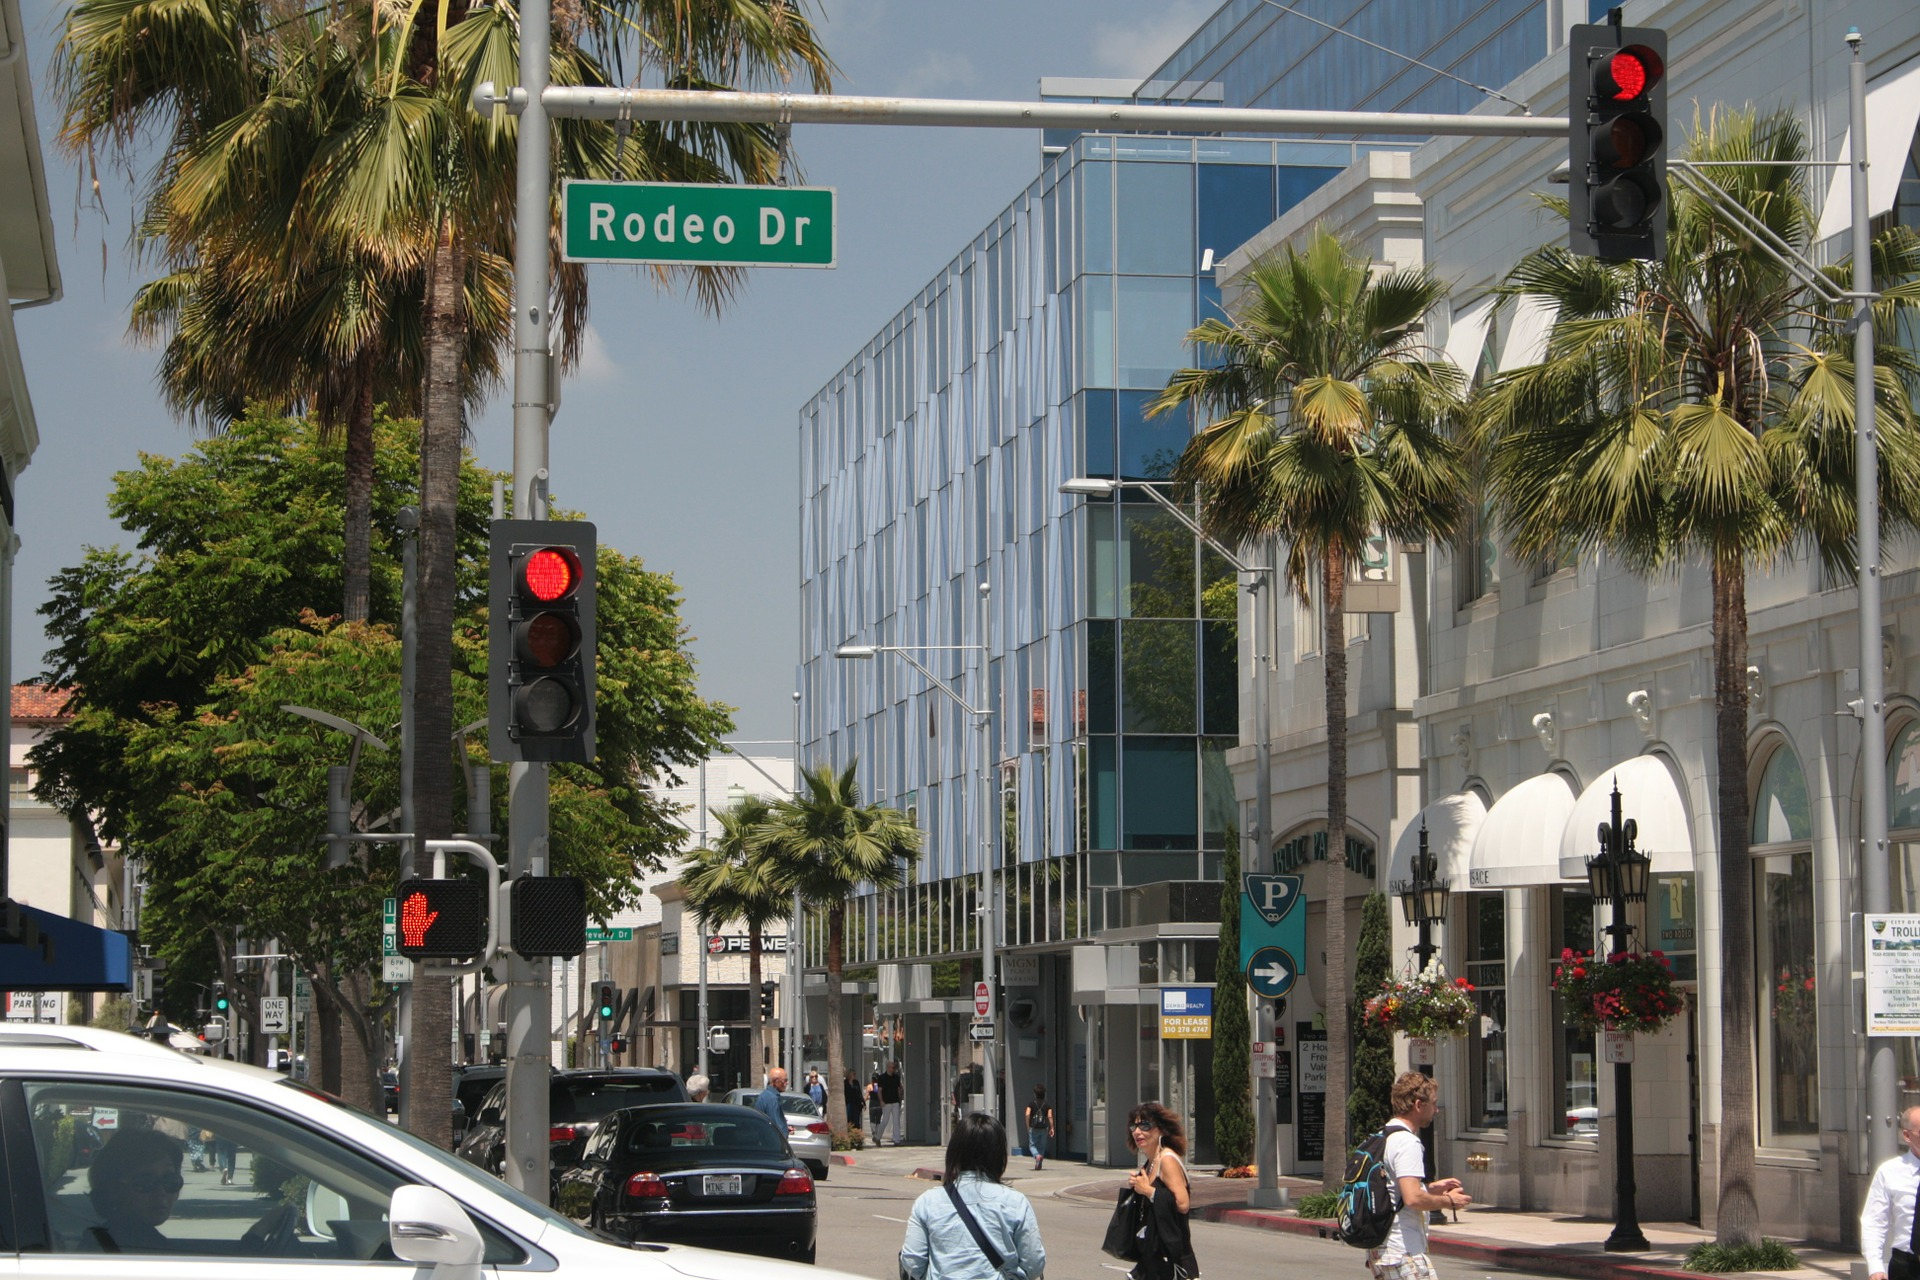 Rodeo drive - luxury shopping avenue